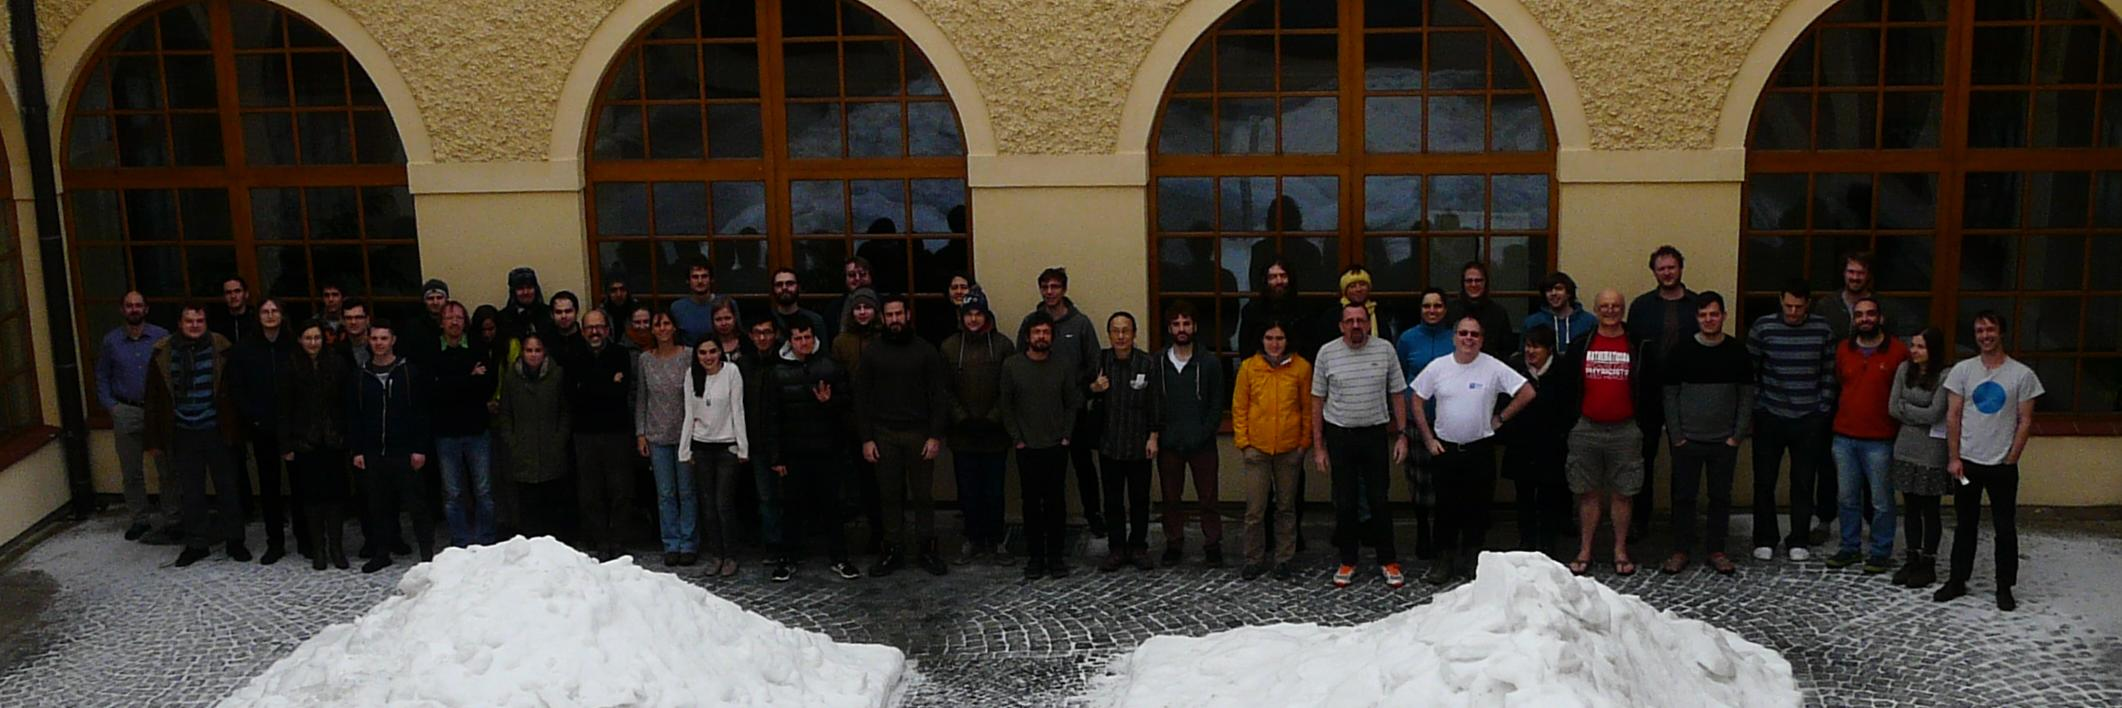 Group photo of the participants of the WS 2017